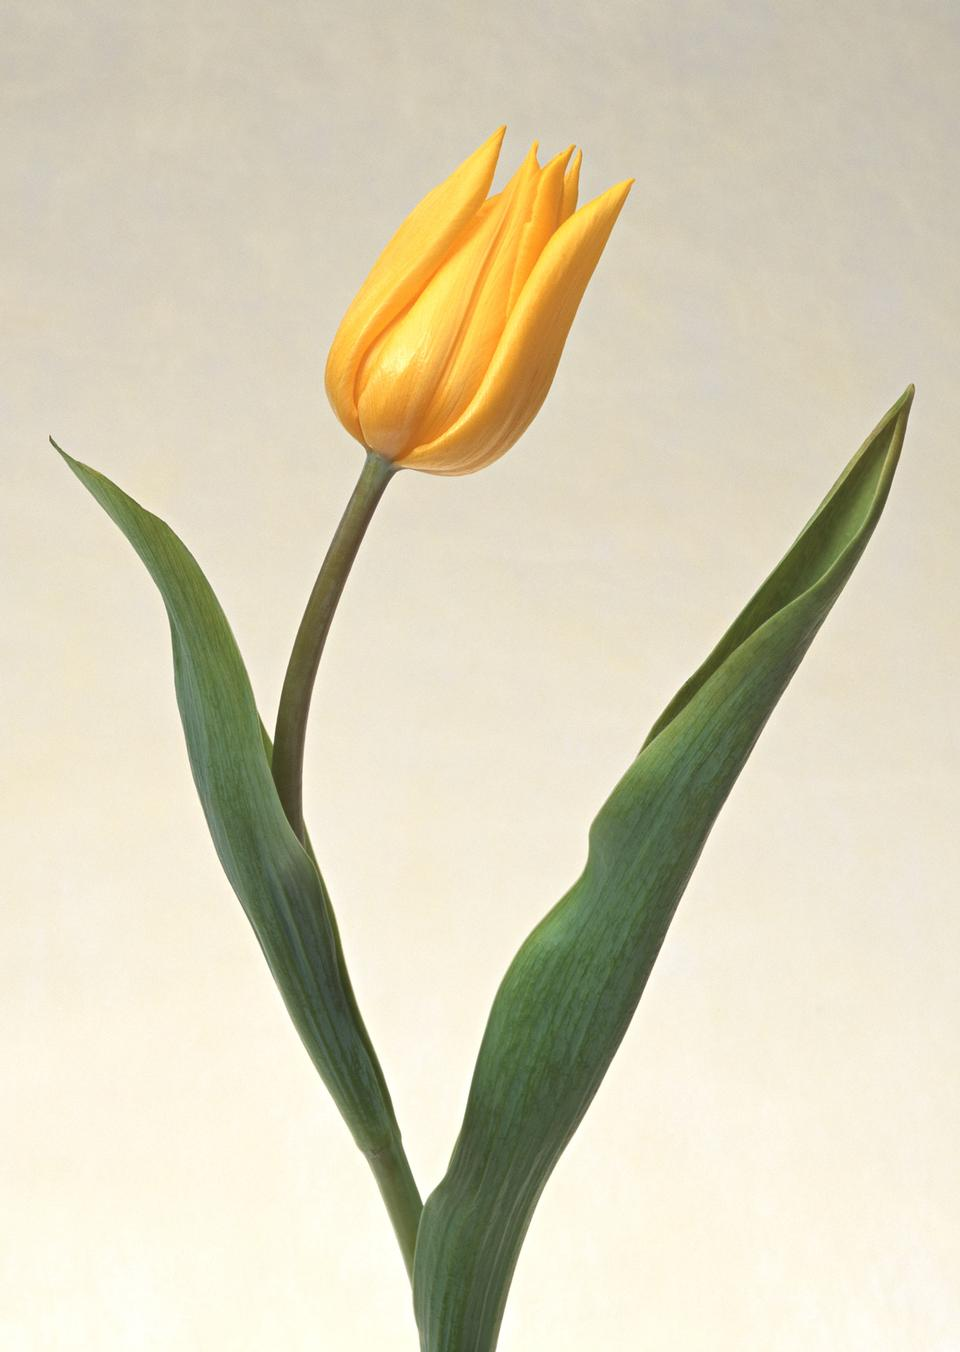 One yellow tulip